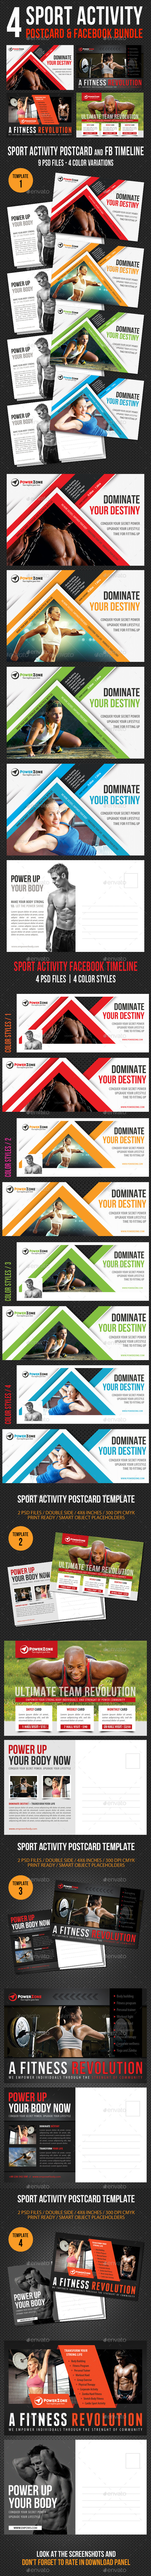 4 in 1 Sport Activity Postcard and FB Bundle 02 - Cards & Invites Print Templates